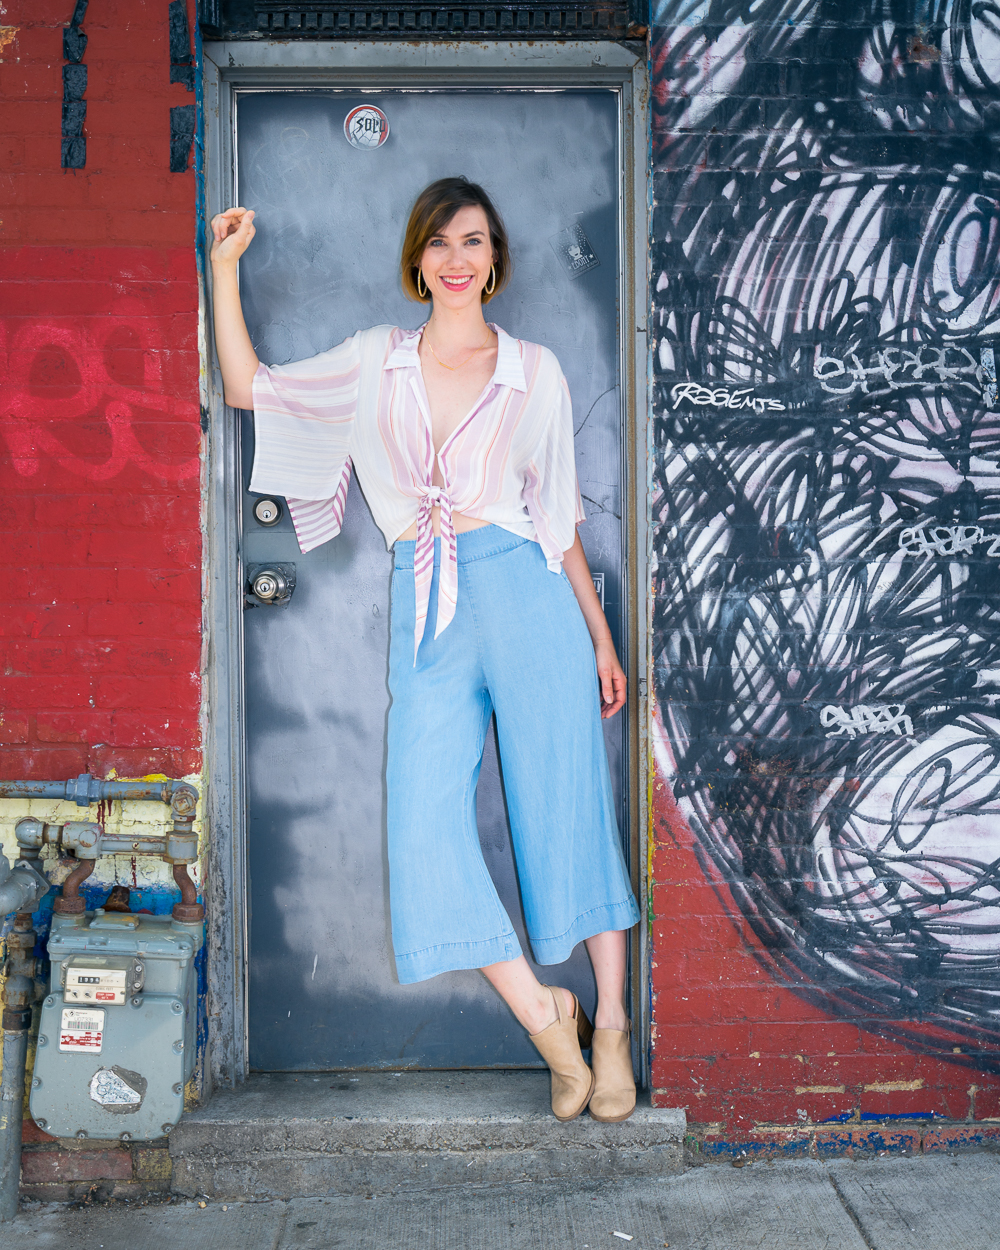 On Claire: Striped Tie Top ($49.50), Blue Culottes ($52.50)